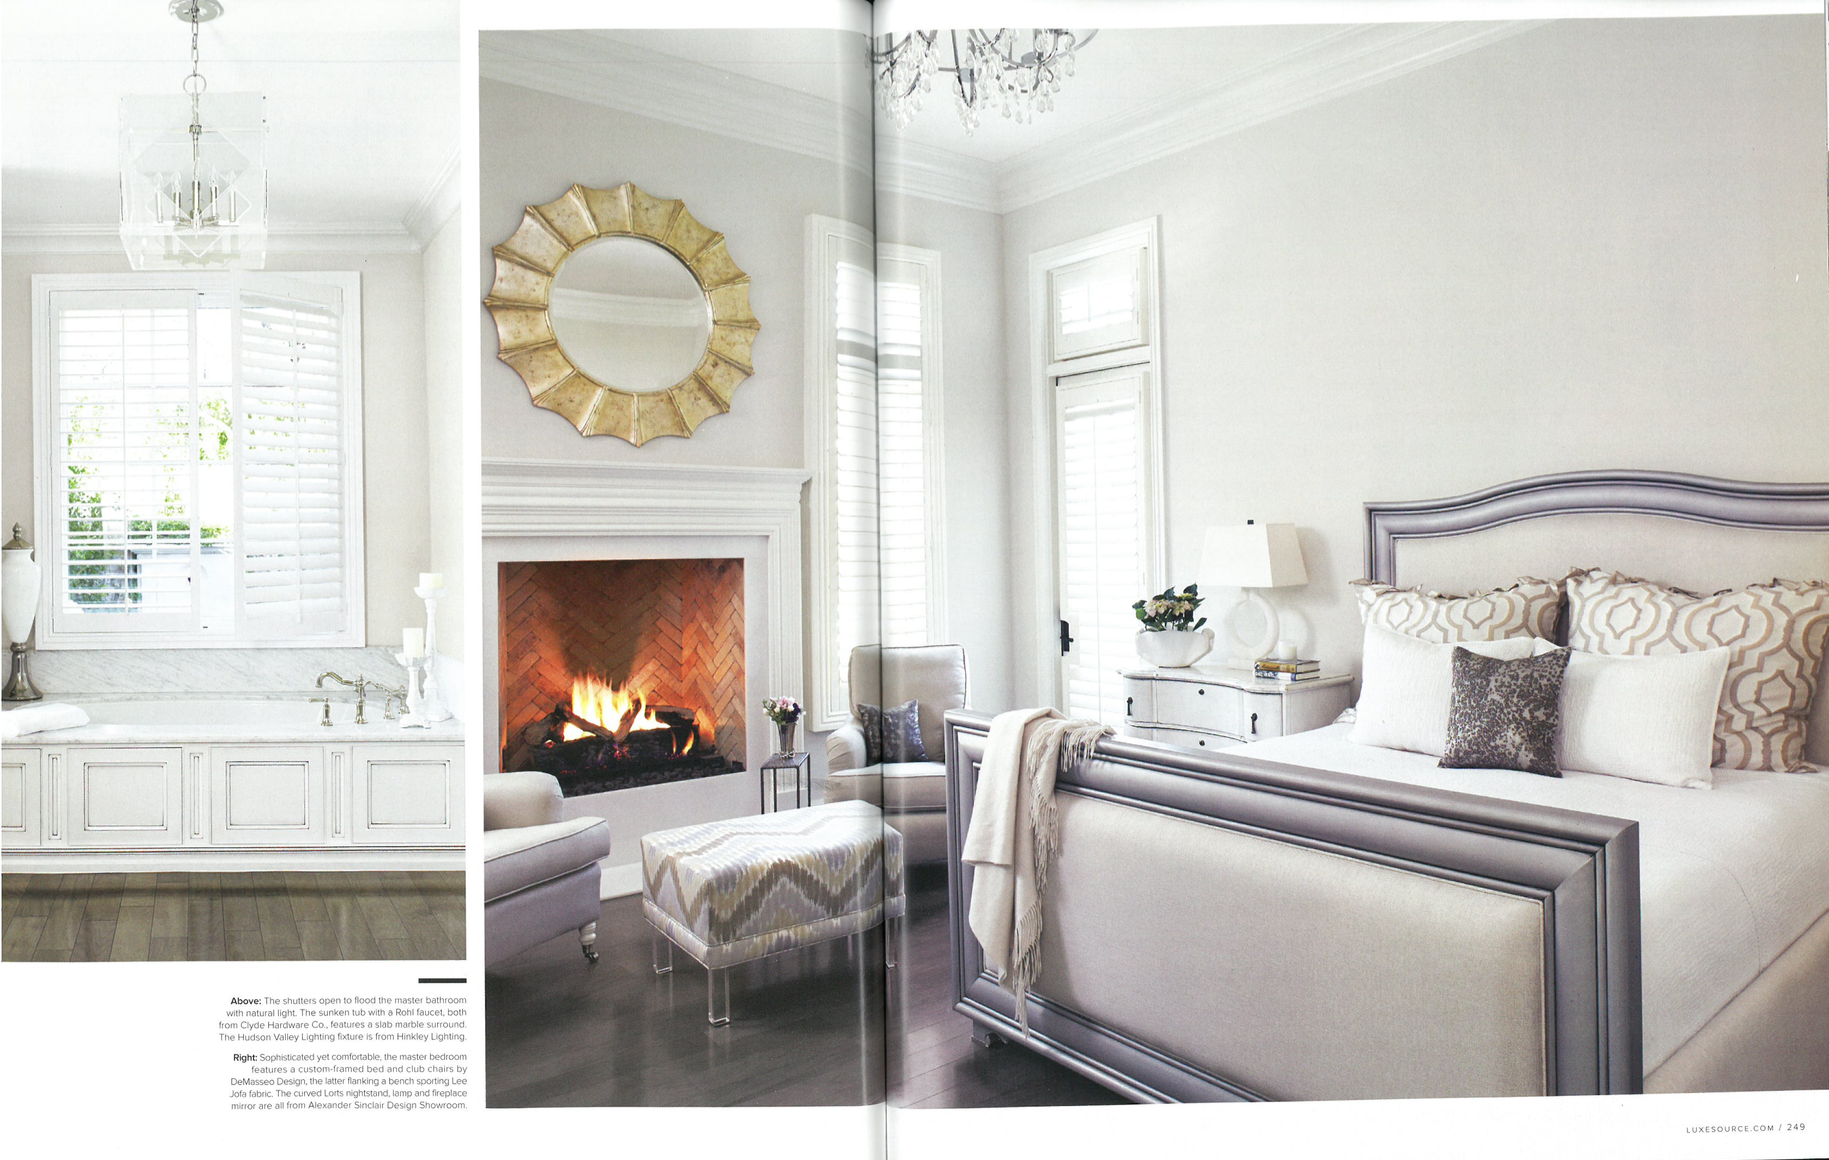 March Luxe pg 248.png